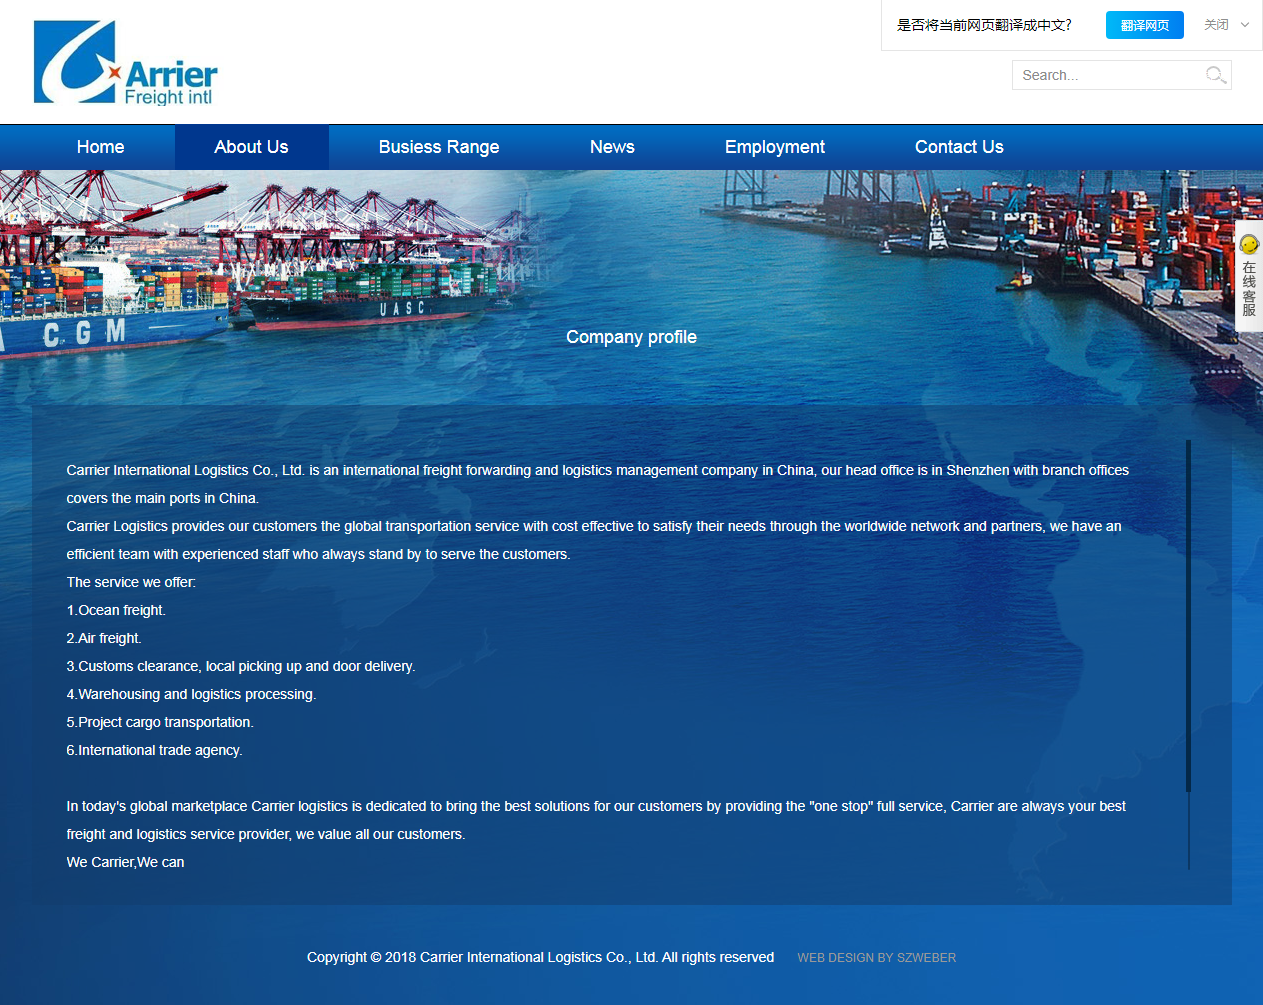 Carrier International